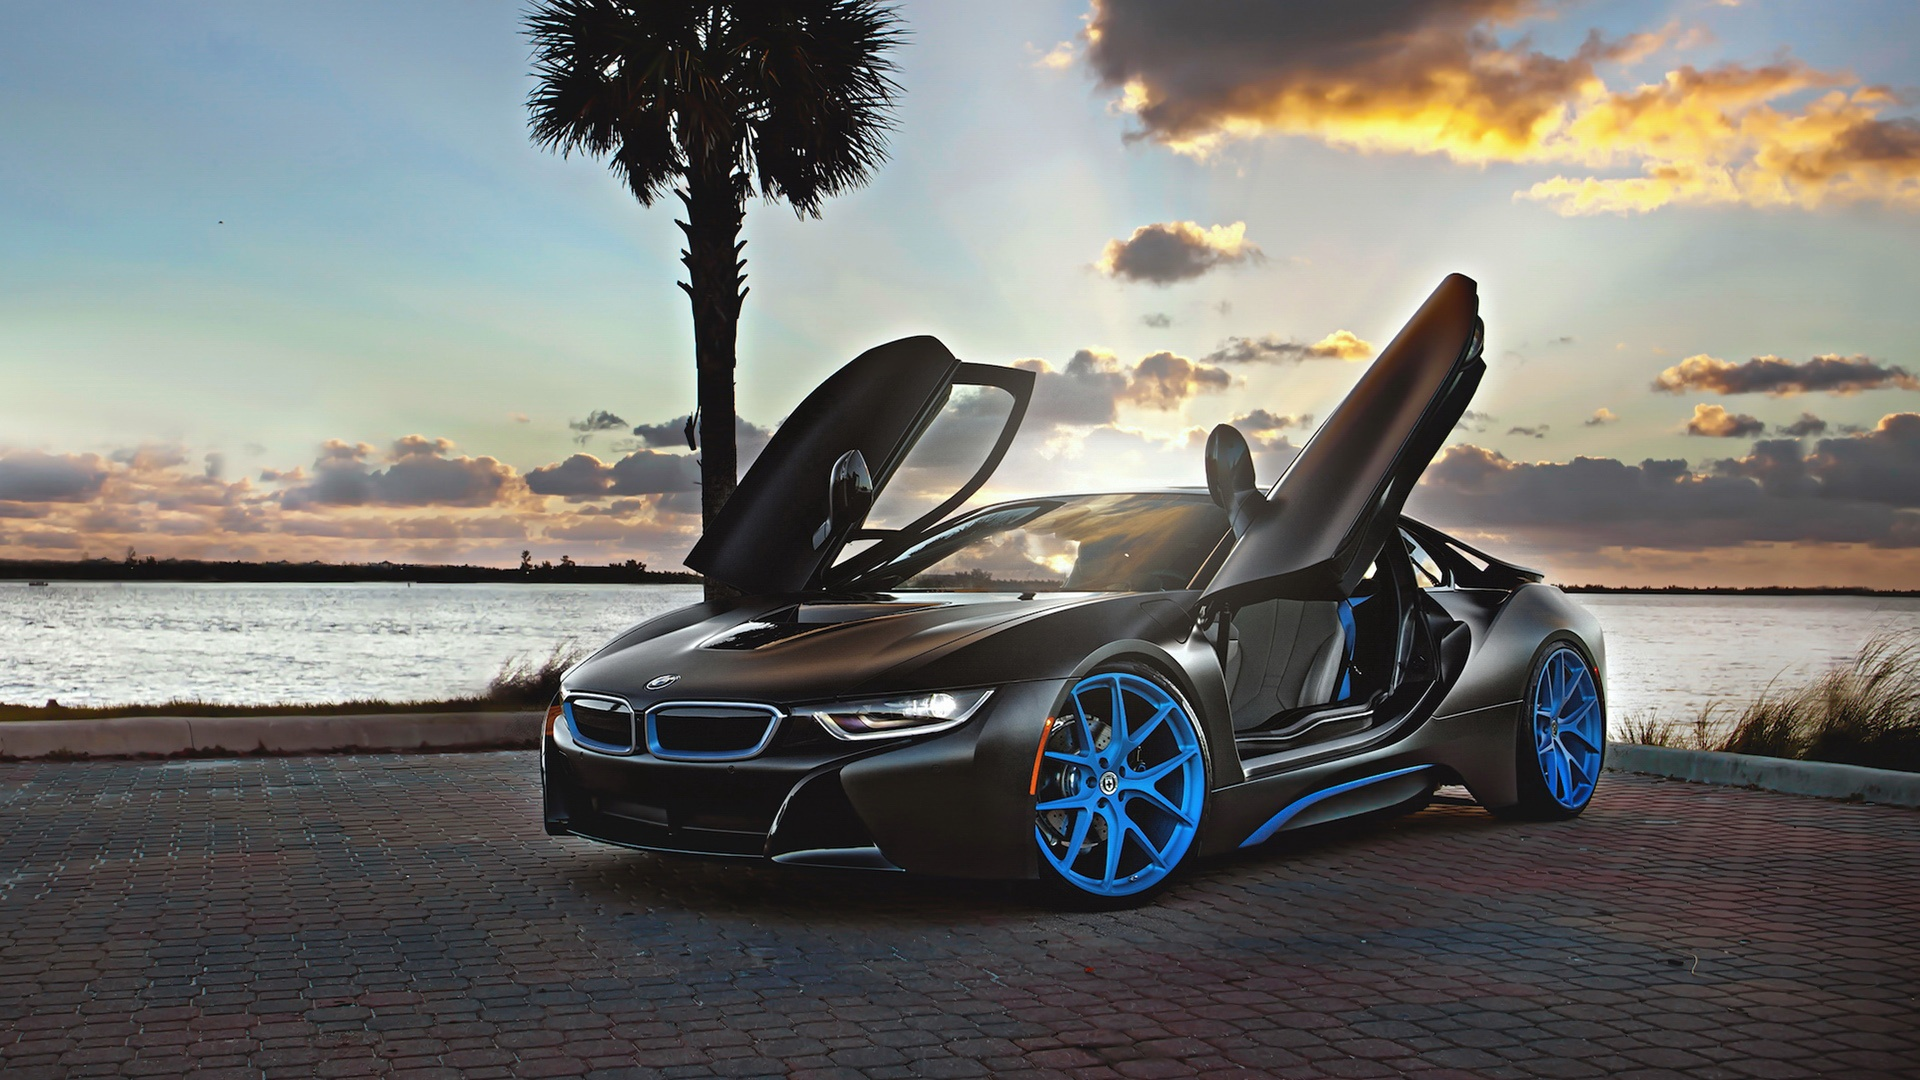 Bmw I8 Wheels Hd Desktop Wallpapers 4k Hd